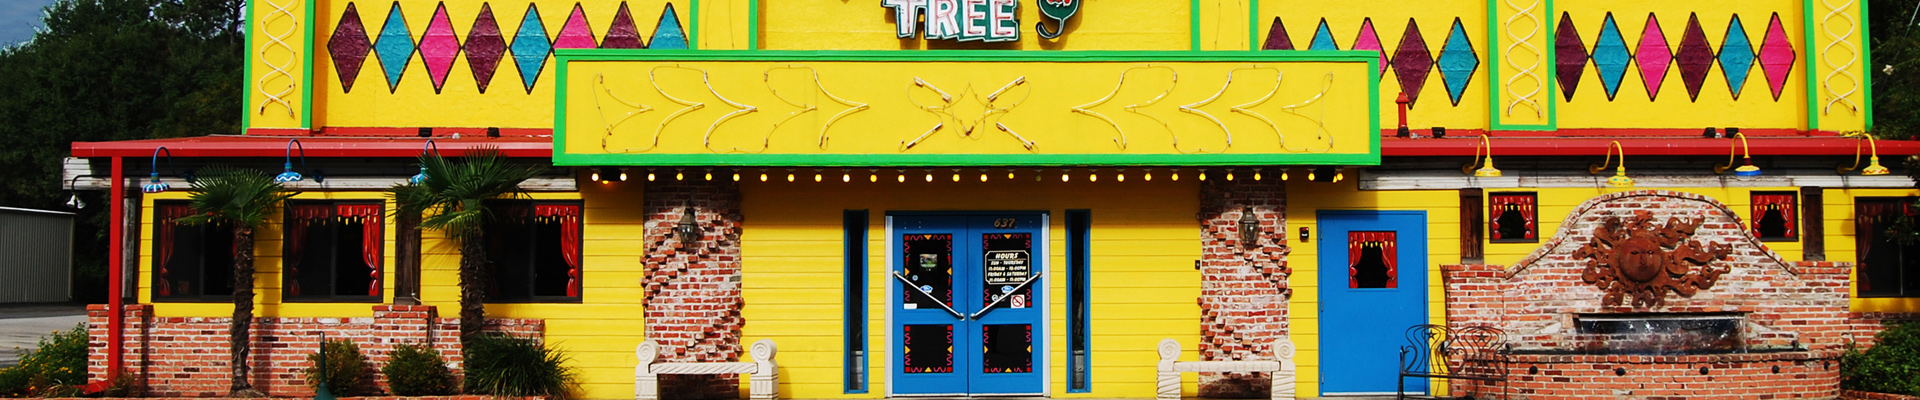 Front entrance of Mexican Restaurant Jalapeno Tree in Nacogdoches, Texas